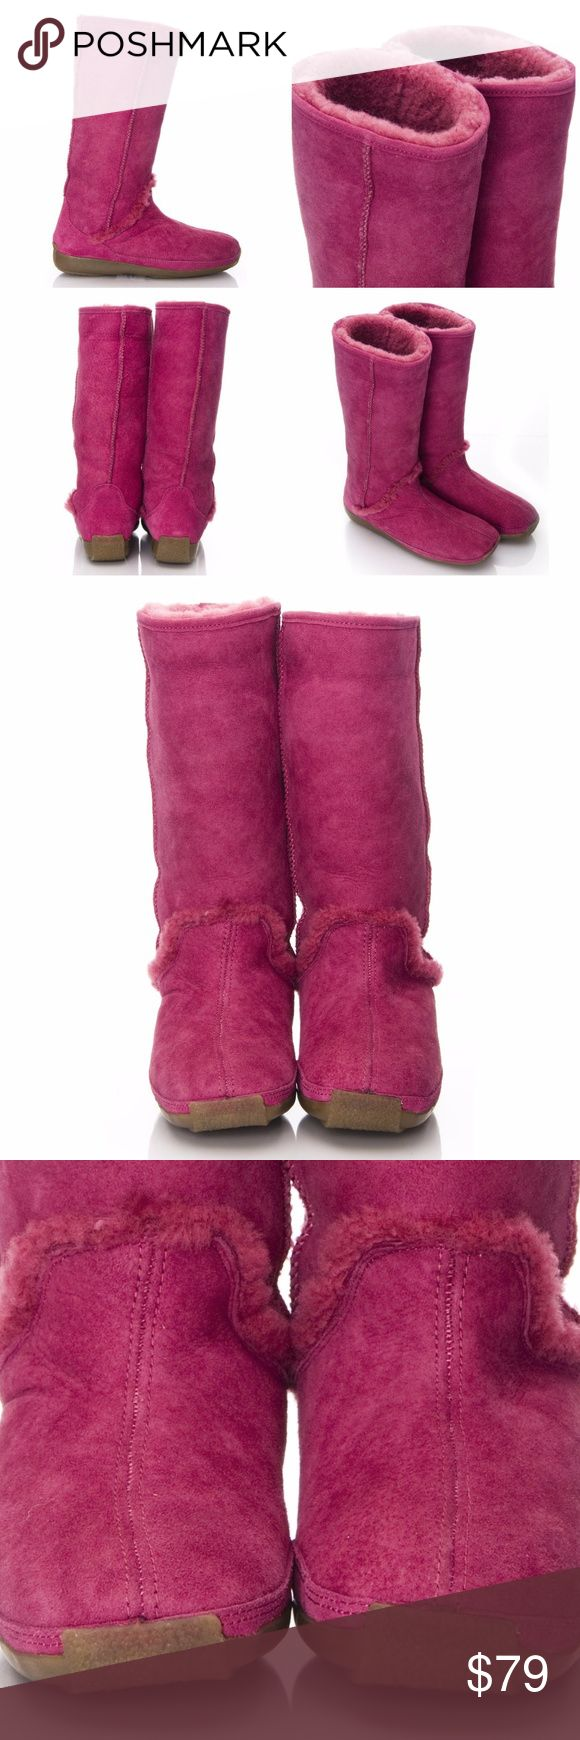 "$189 New Hush Puppies Real Shearling Boots Hush Puppies Shearling Boots  Brand New * Suede Fuchsia Exterior * U.S. Size: 8 * Super Soft Shearling Lining * Waterproof Rubber Soles * Beautiful Color! * 1"" Rubber Heel * Boots Only Hush Puppies Shoes Winter & Rain Boots"